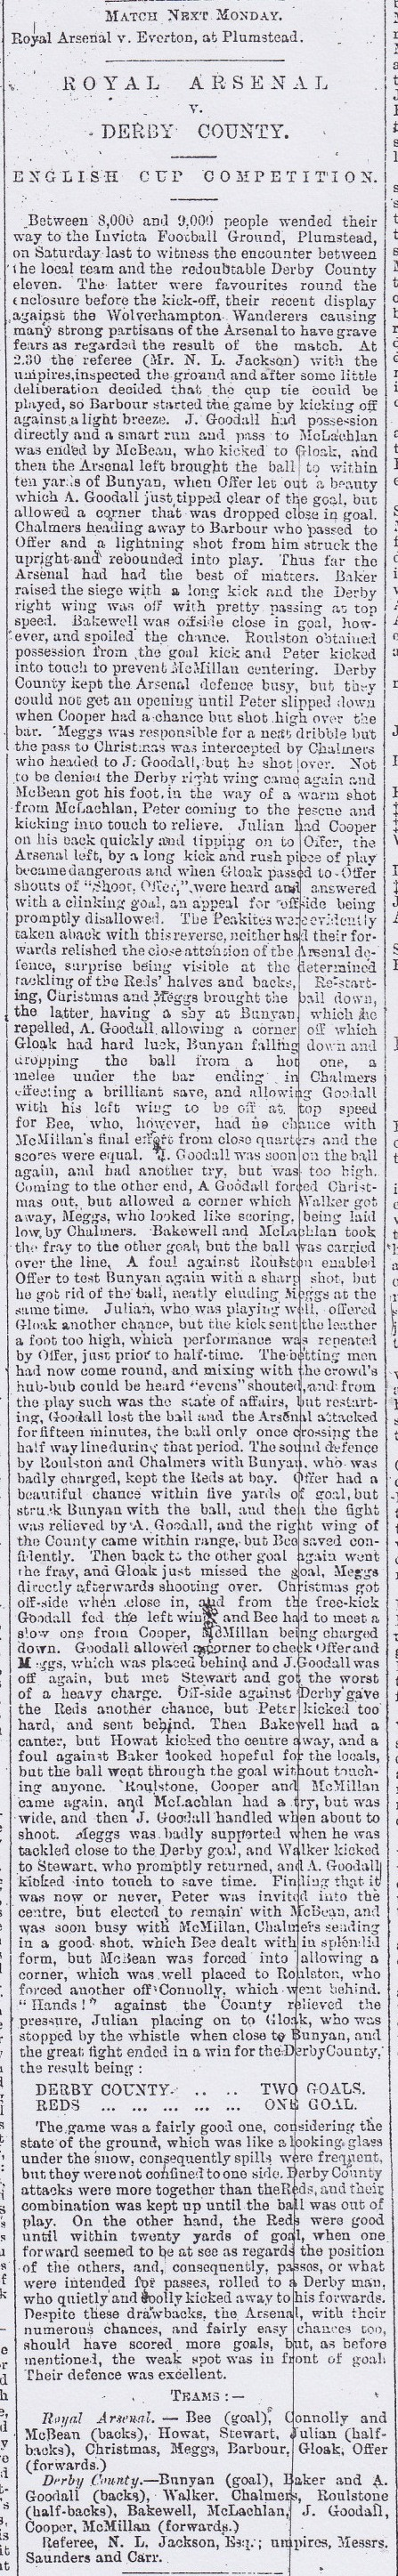 Woolwich Gazette 23 January 1891